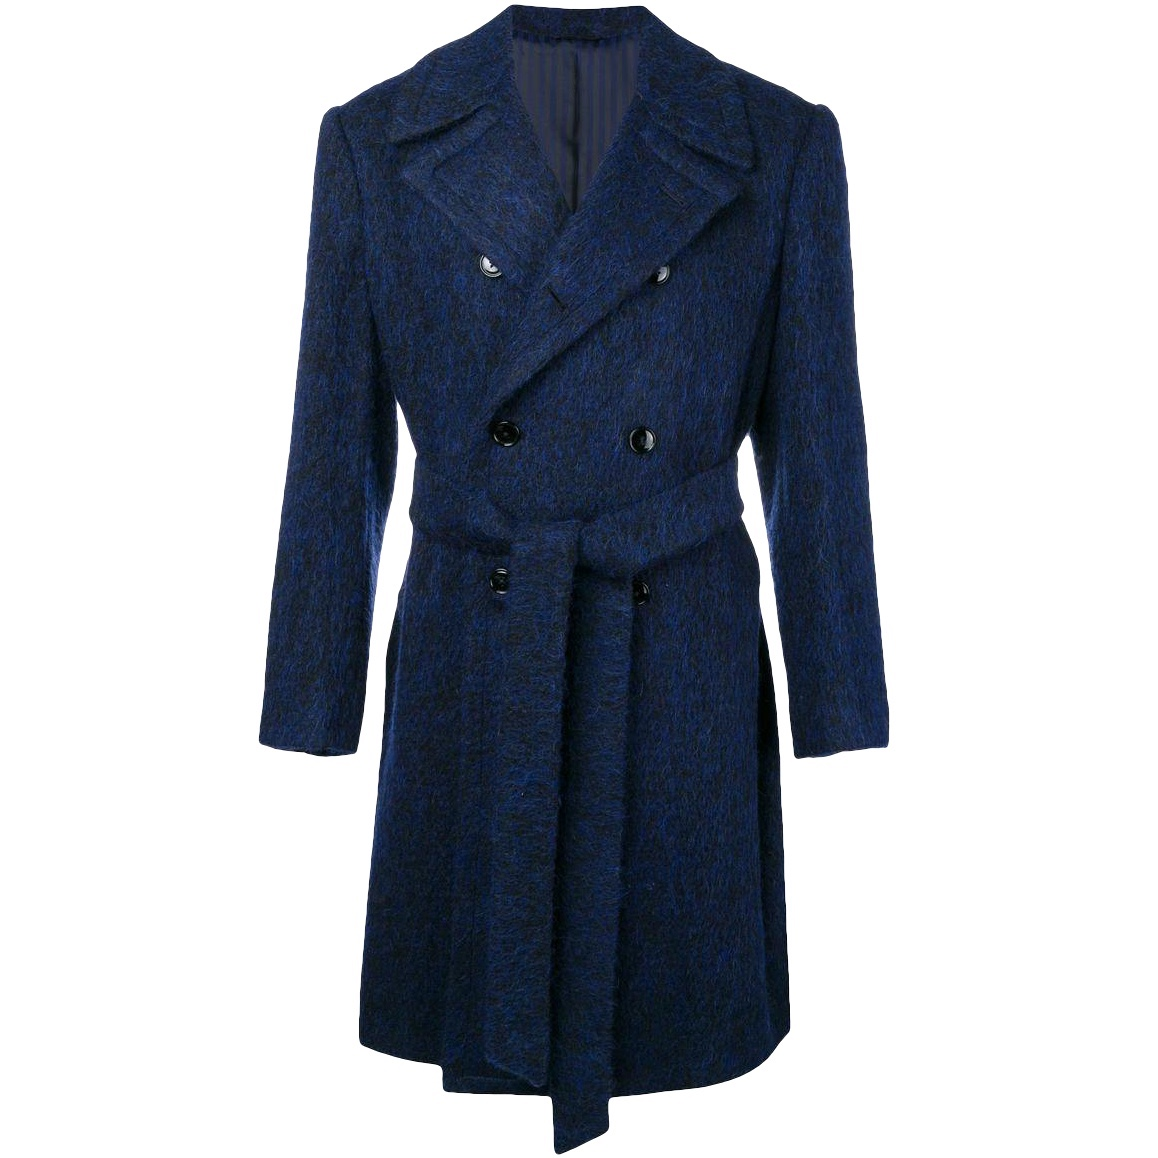 mp-massimo-piombo-BLUE-Mp-Massimo-Piombo-Belted-Double-Breasted-Coat.jpg